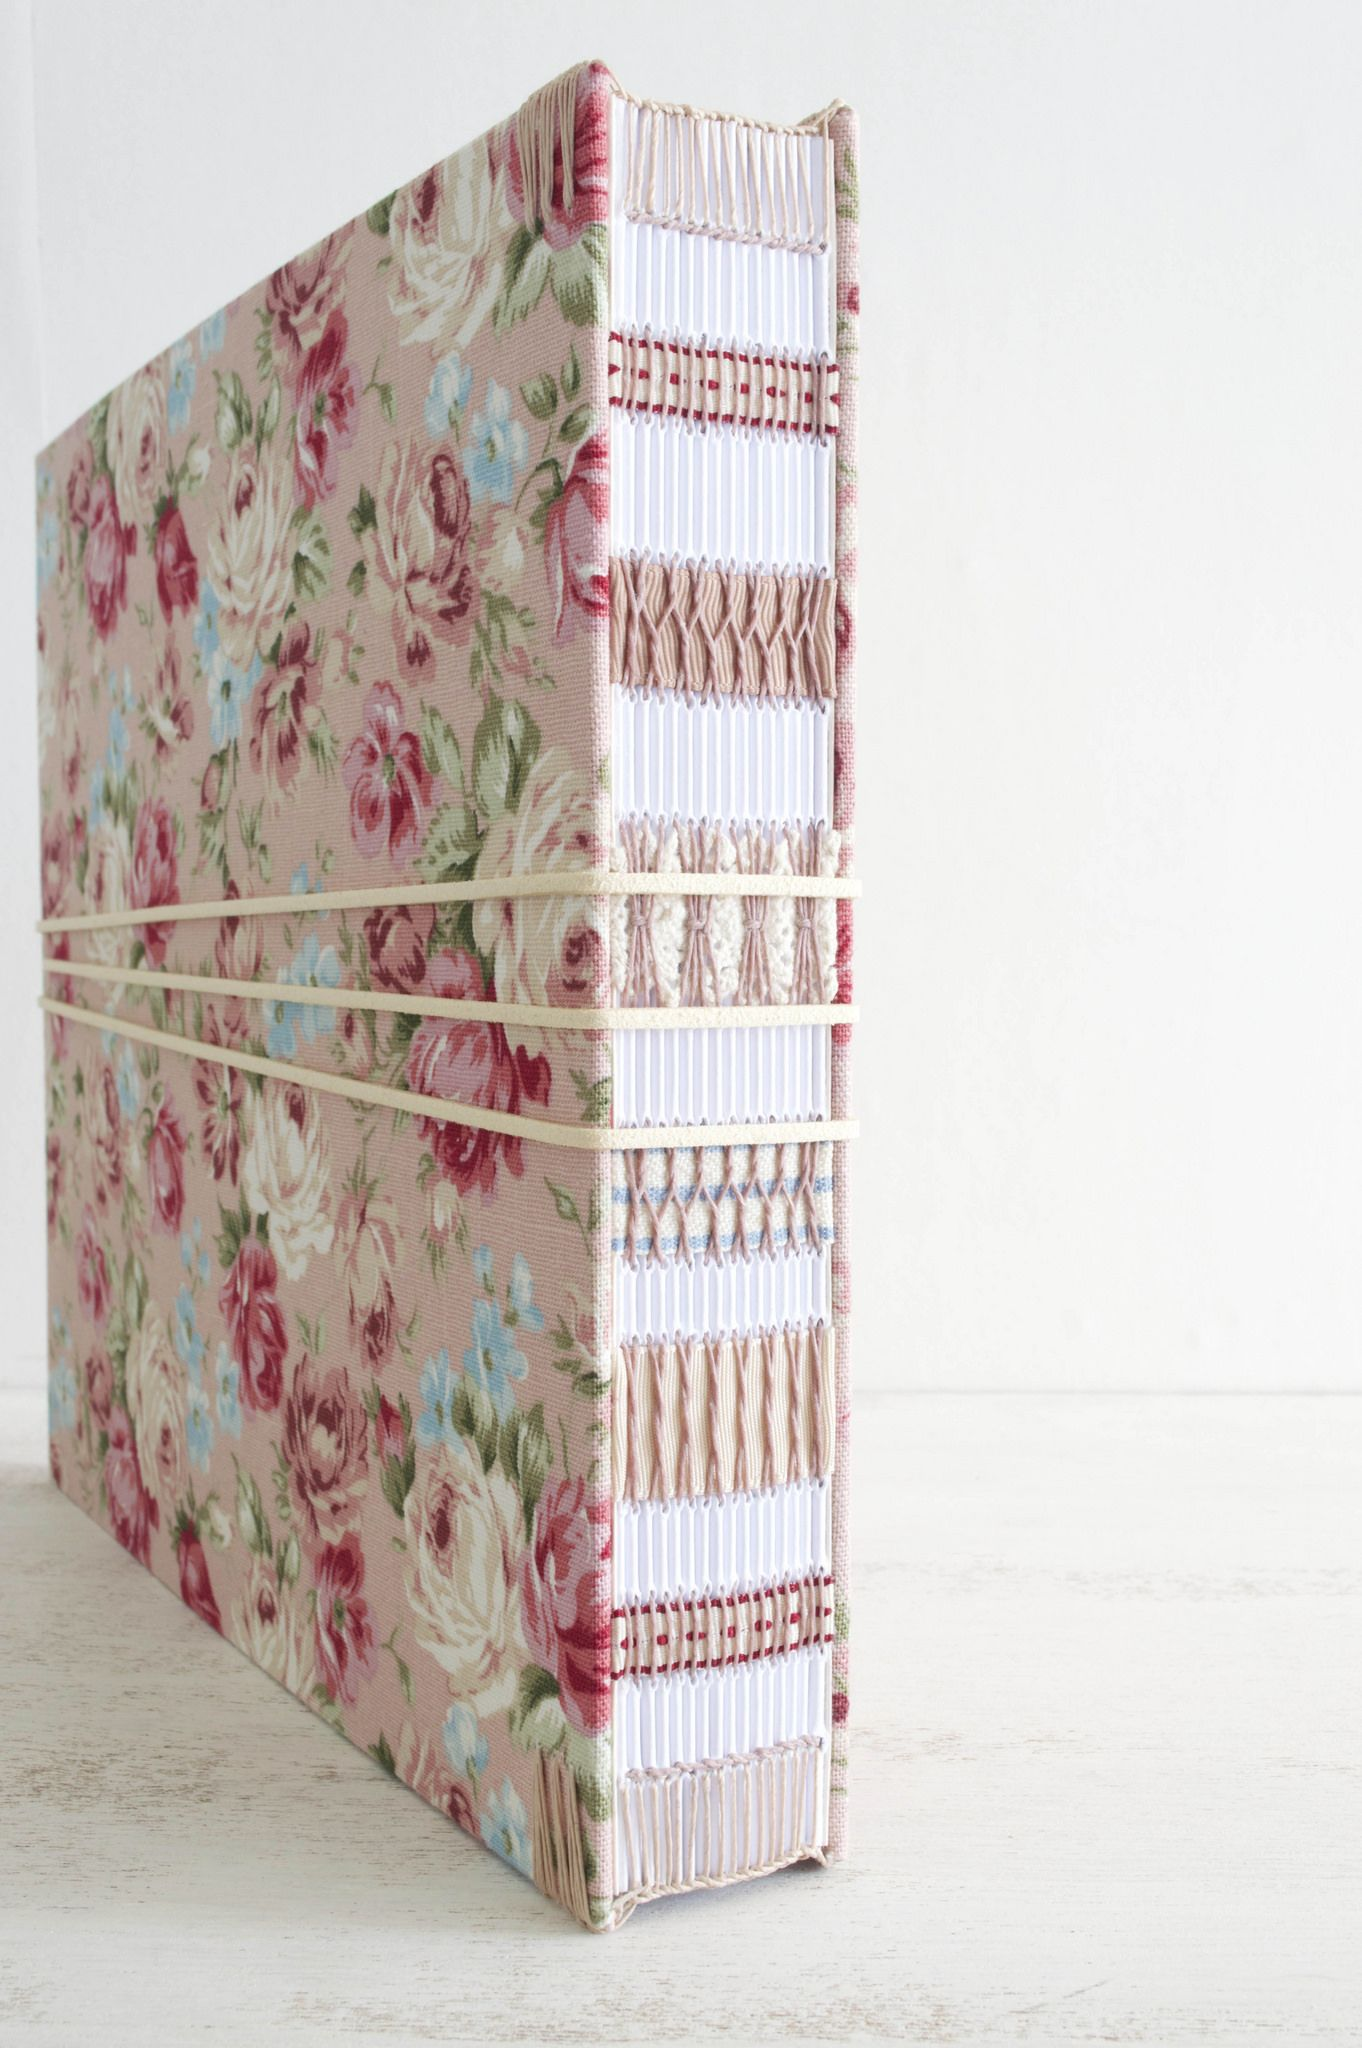 https://flic.kr/p/xSX5i4 | DSC_0042 | Floral wedding album with exposed spine by Dani Fox